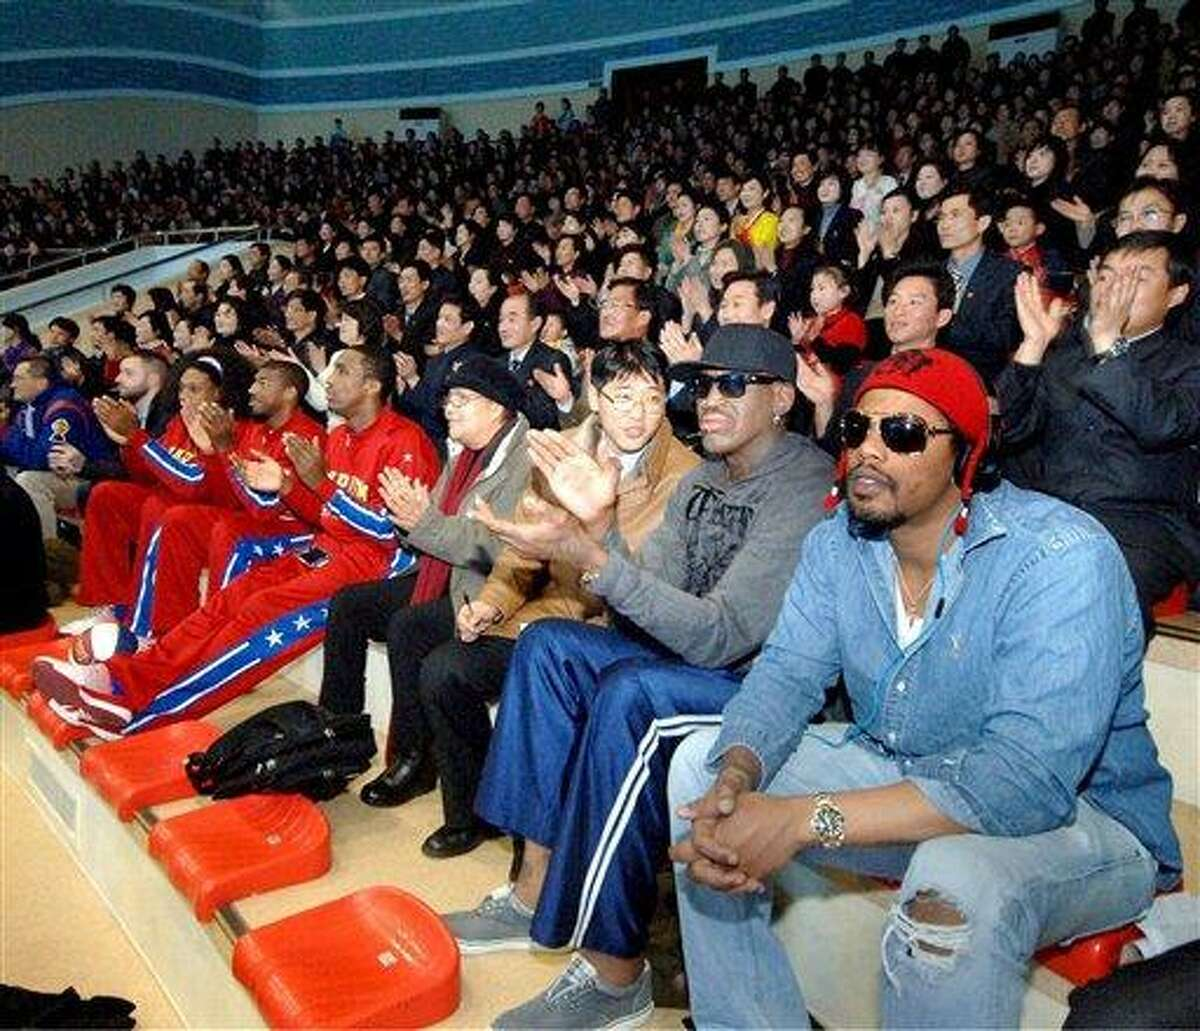 """In this image released by the Korean Central News Agency (KCNA) and distributed by the Korea News Service, former NBA star Dennis Rodman, second right in front row, visits a dolphin aquarium in Pyongyang in North Korea Friday, March 1, 2013. Ending his unexpected round of basketball diplomacy in North Korea on Friday, Rodman called leader Kim Jong Un an """"awesome guy"""" and said his father and grandfather were """"great leaders."""" AP Photo/KCNA"""